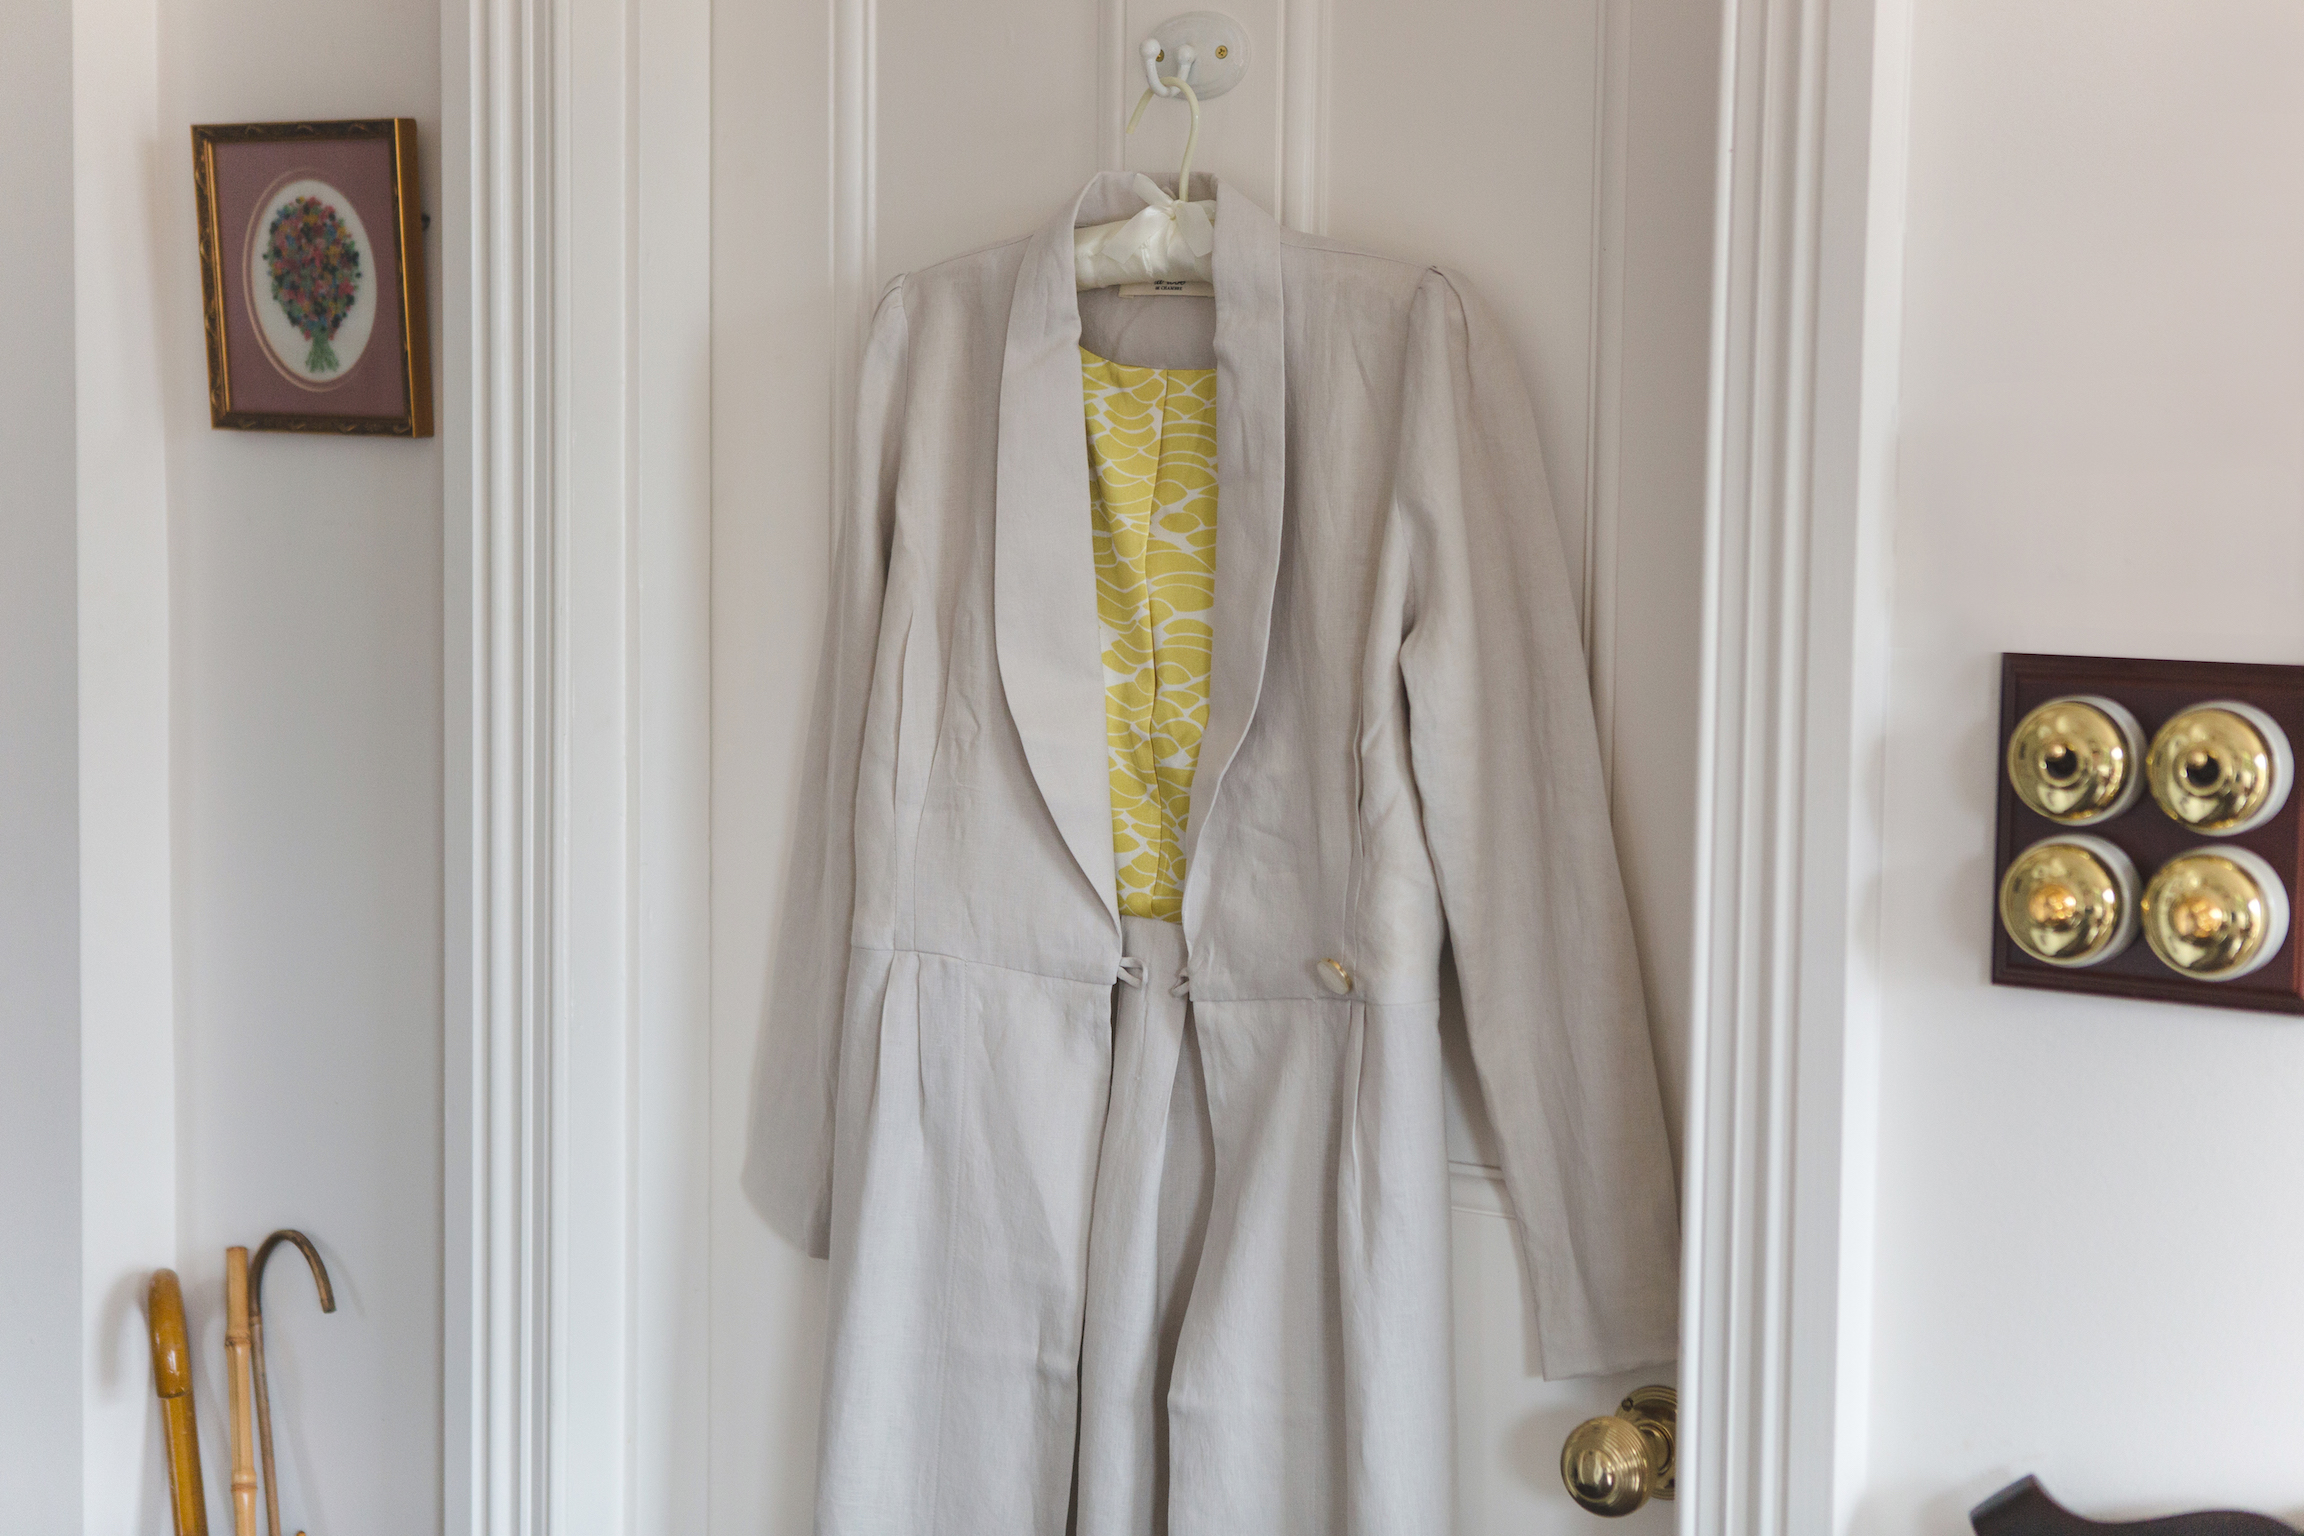 La Robe de chambre regency day coat linen dressing gown silt buff.jpg